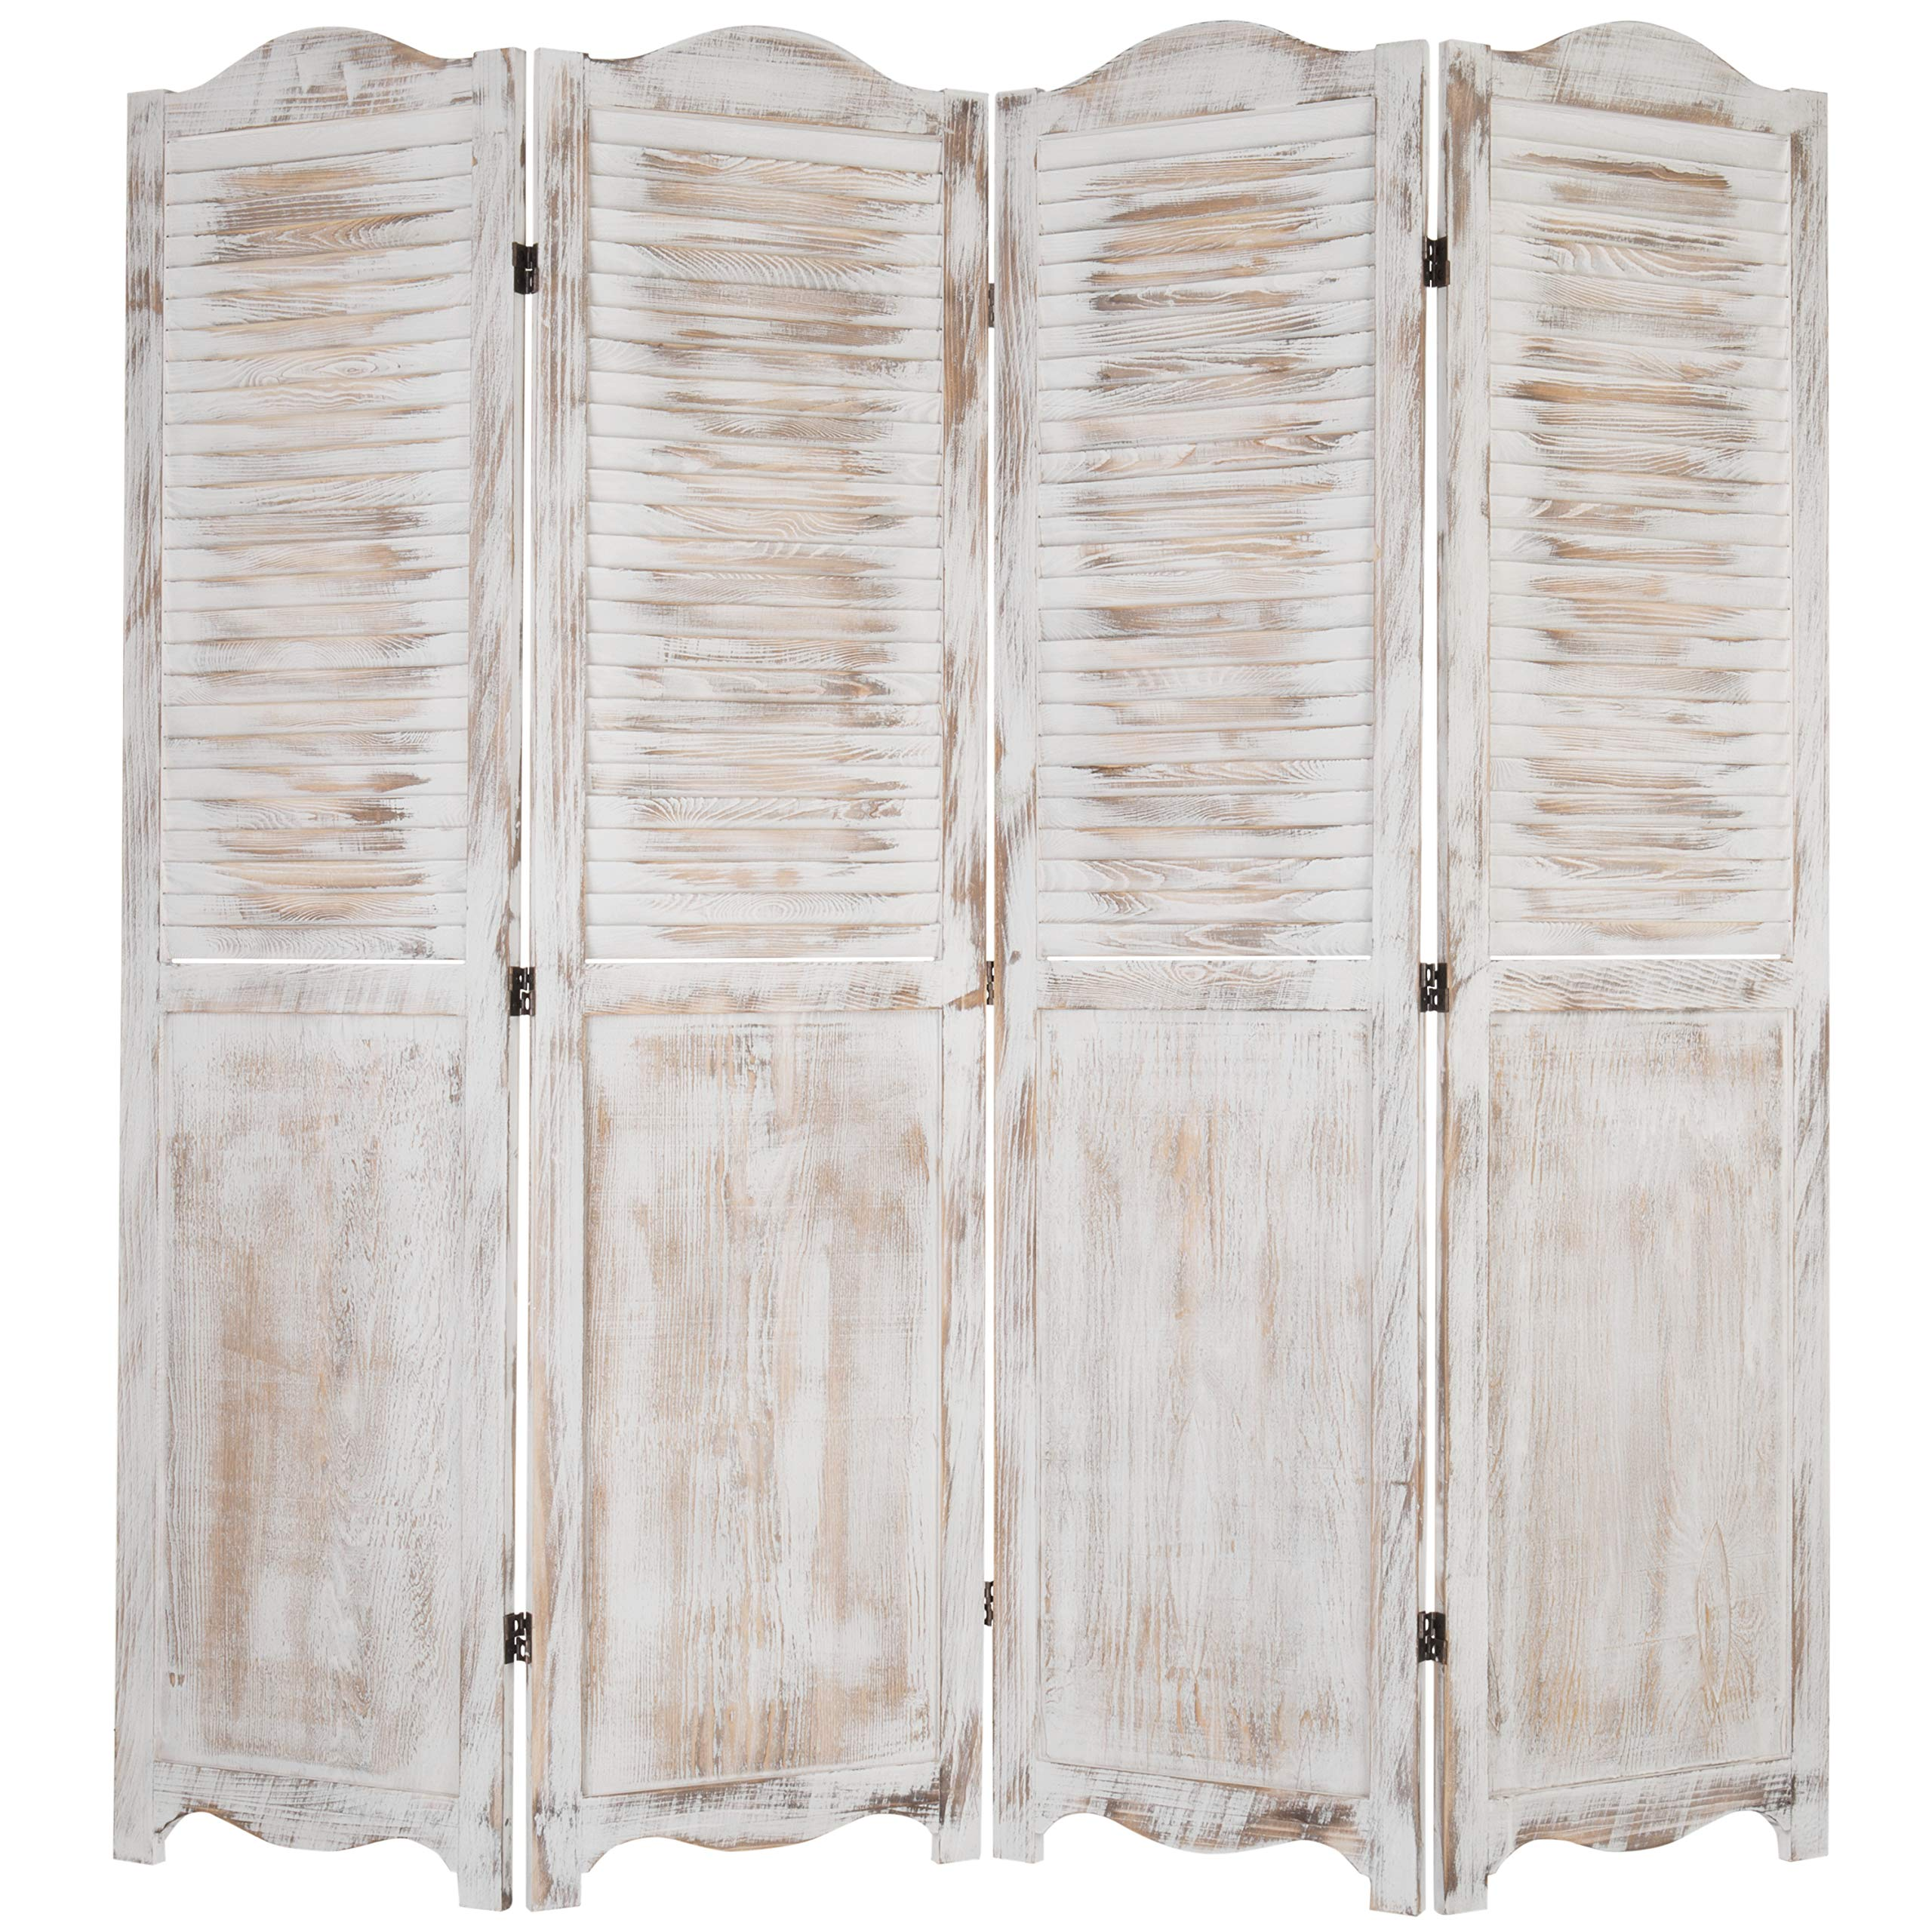 MyGift 4-Panel Antique Whitewashed Wood Louvered Room Divider Screen with Dual-Action Hinges by MyGift